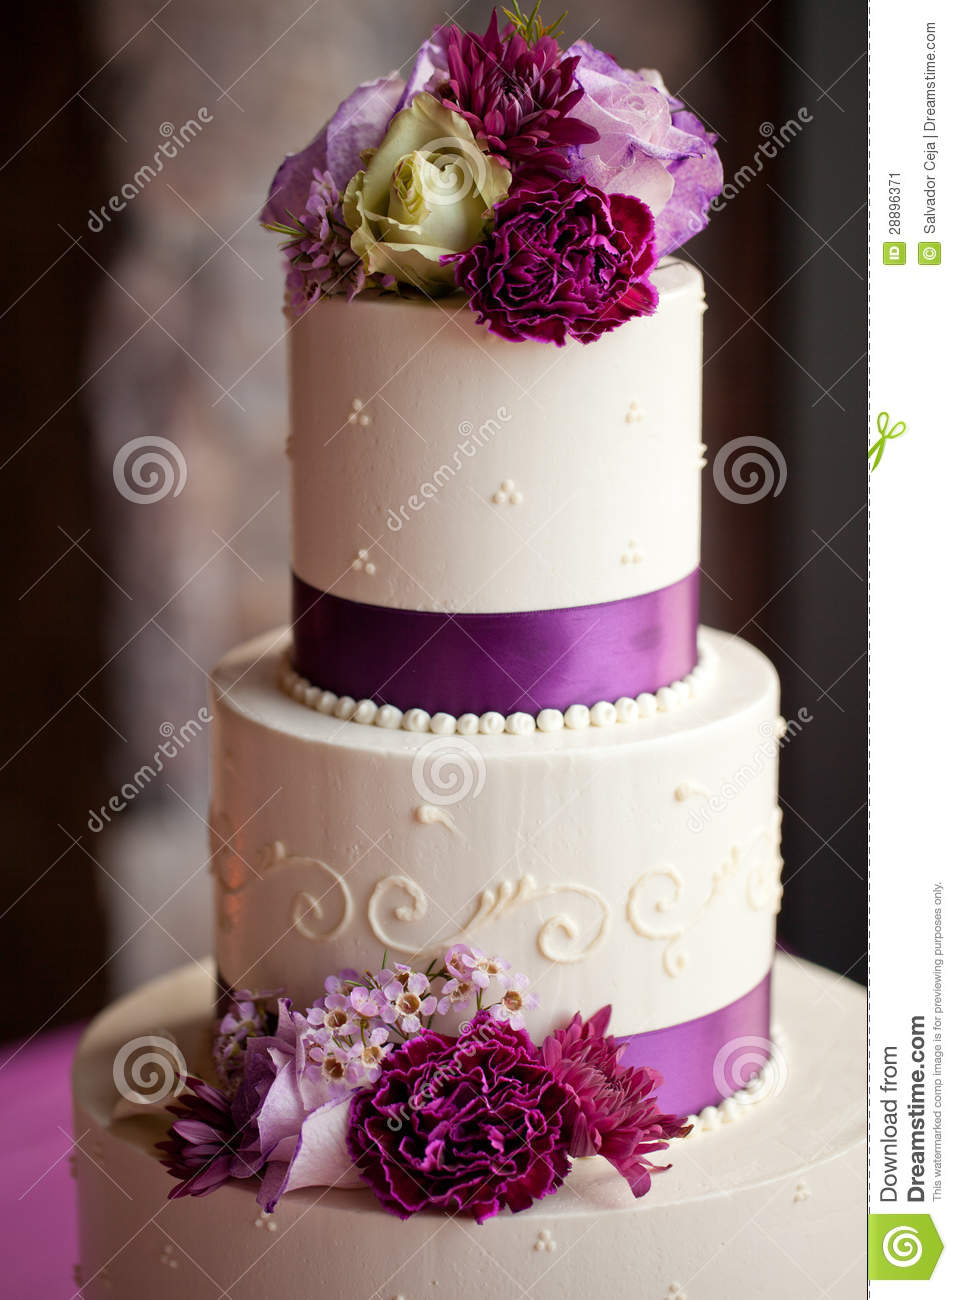 wedding cakes with flowers on top wedding cake with flowers stock image image 28896371 26022